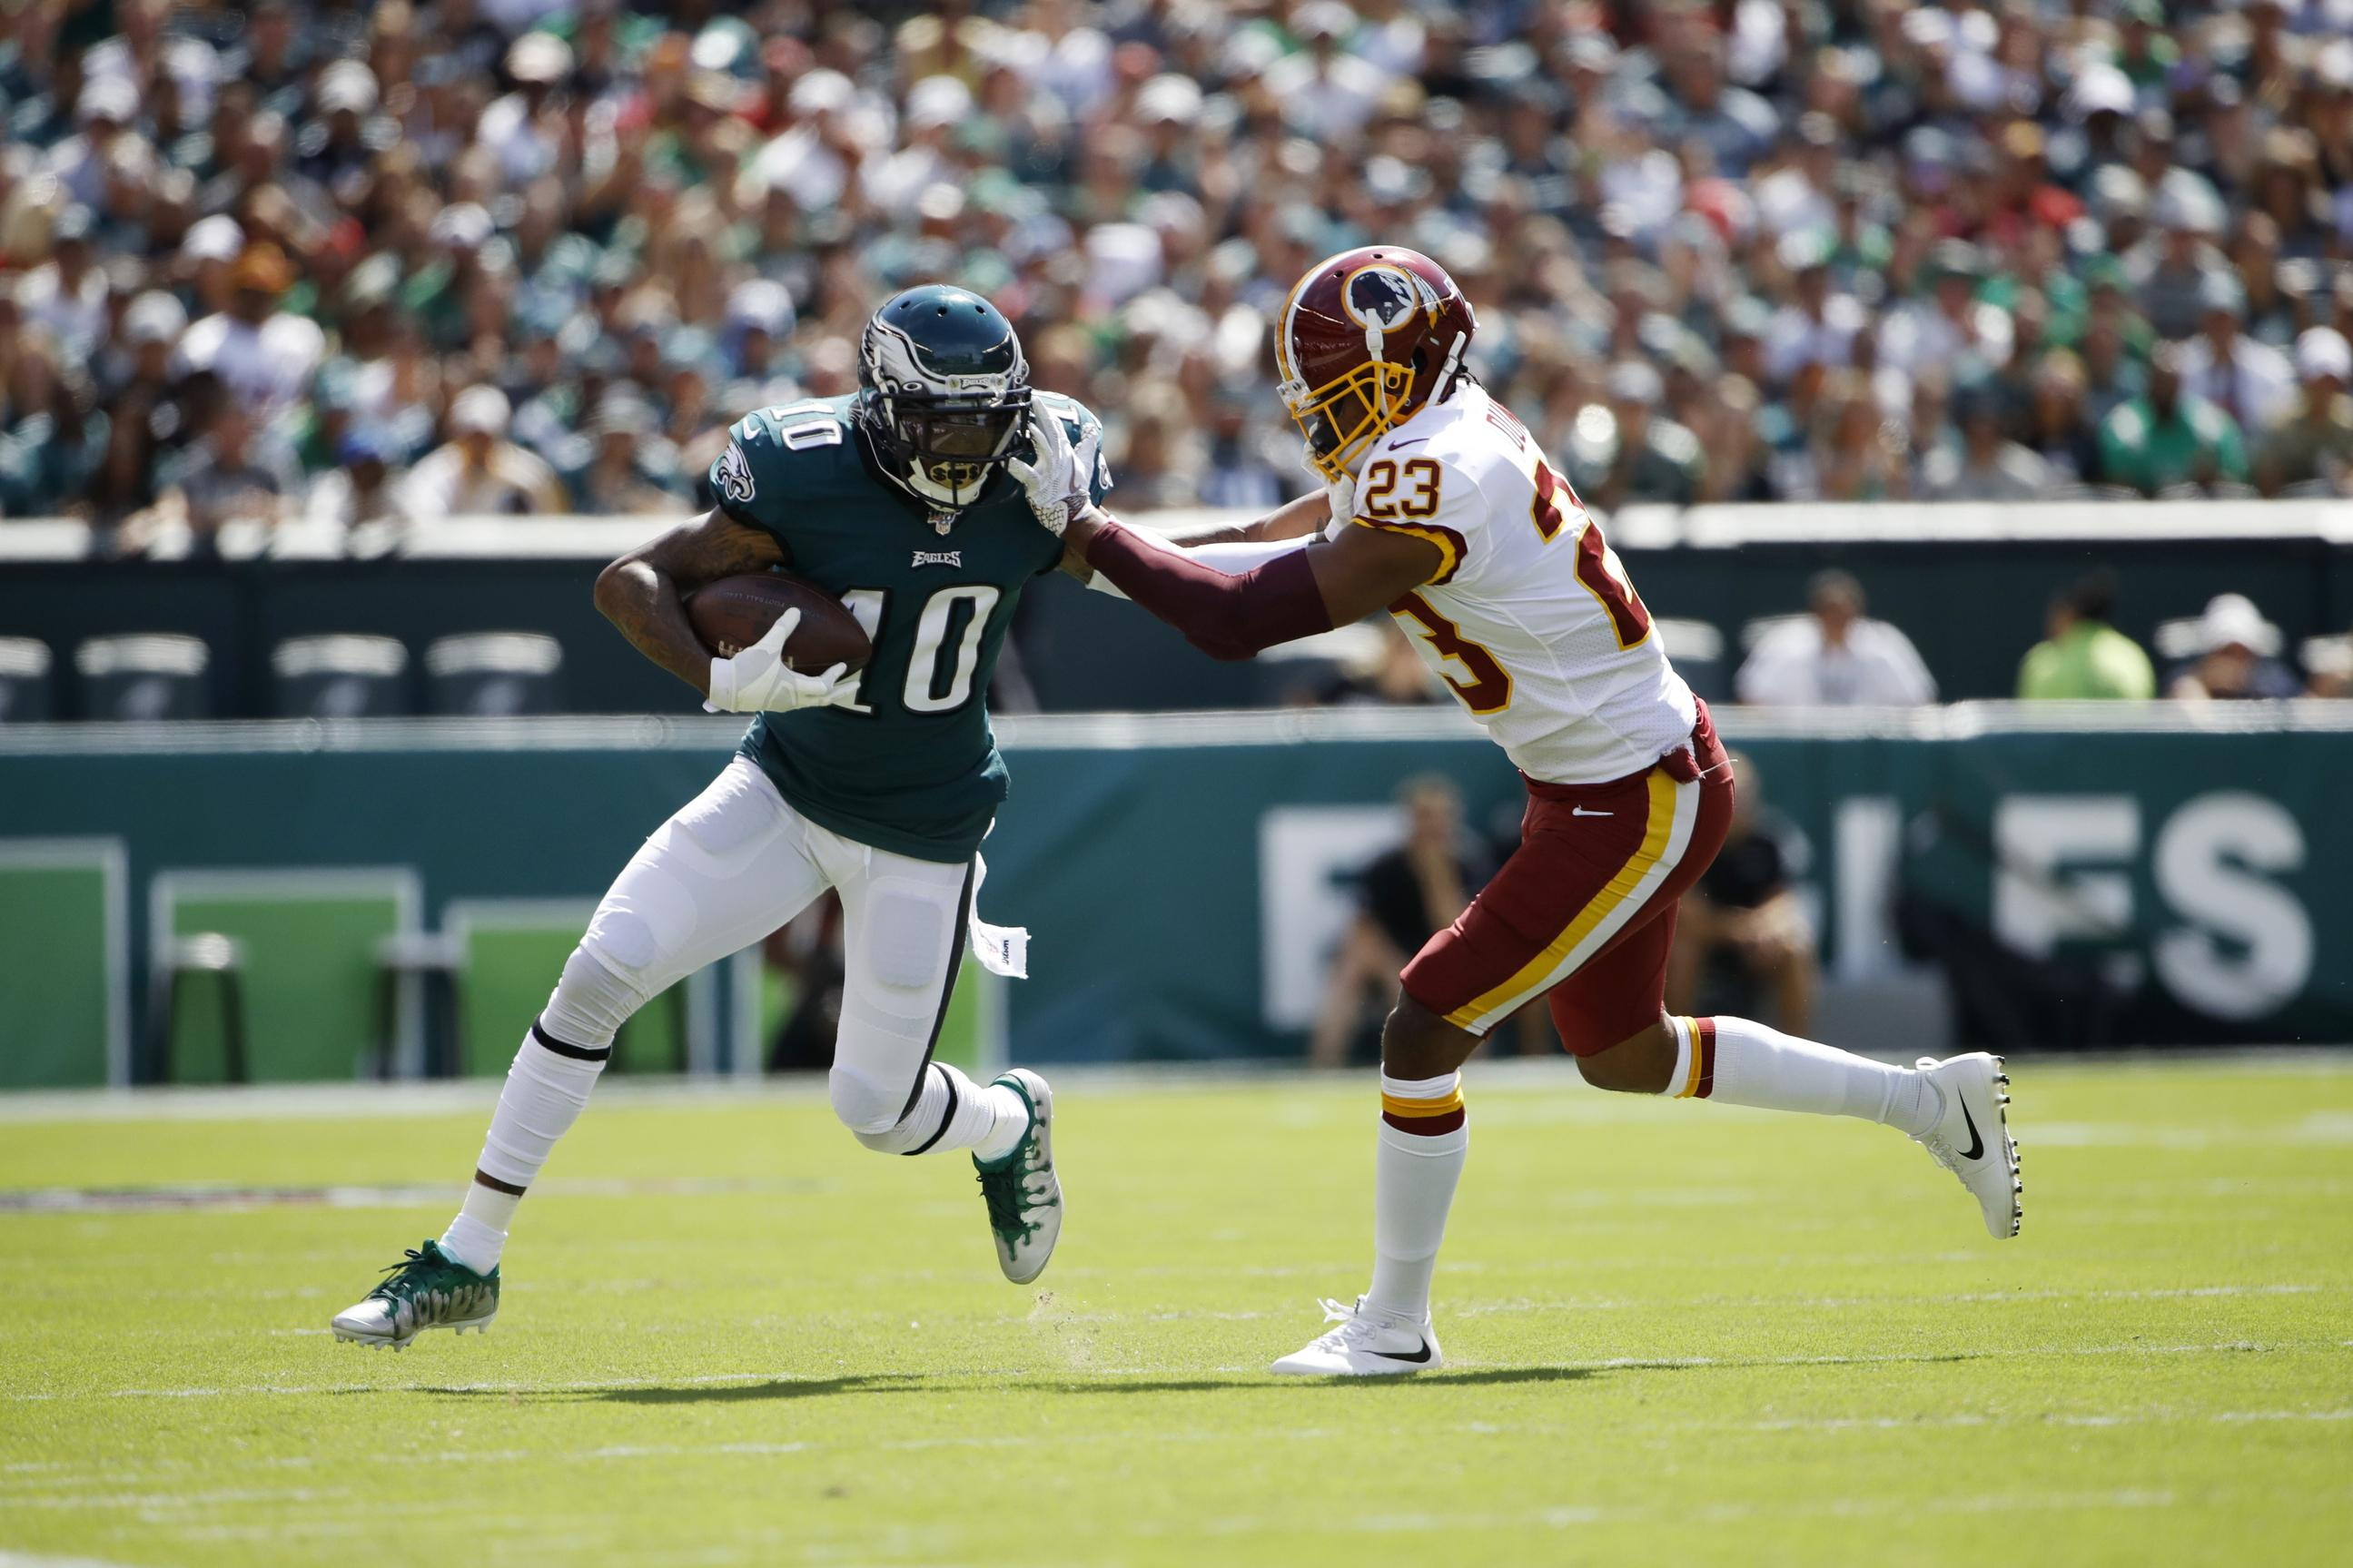 DeSean Jackson fined for unnecessary roughness call against Redskins